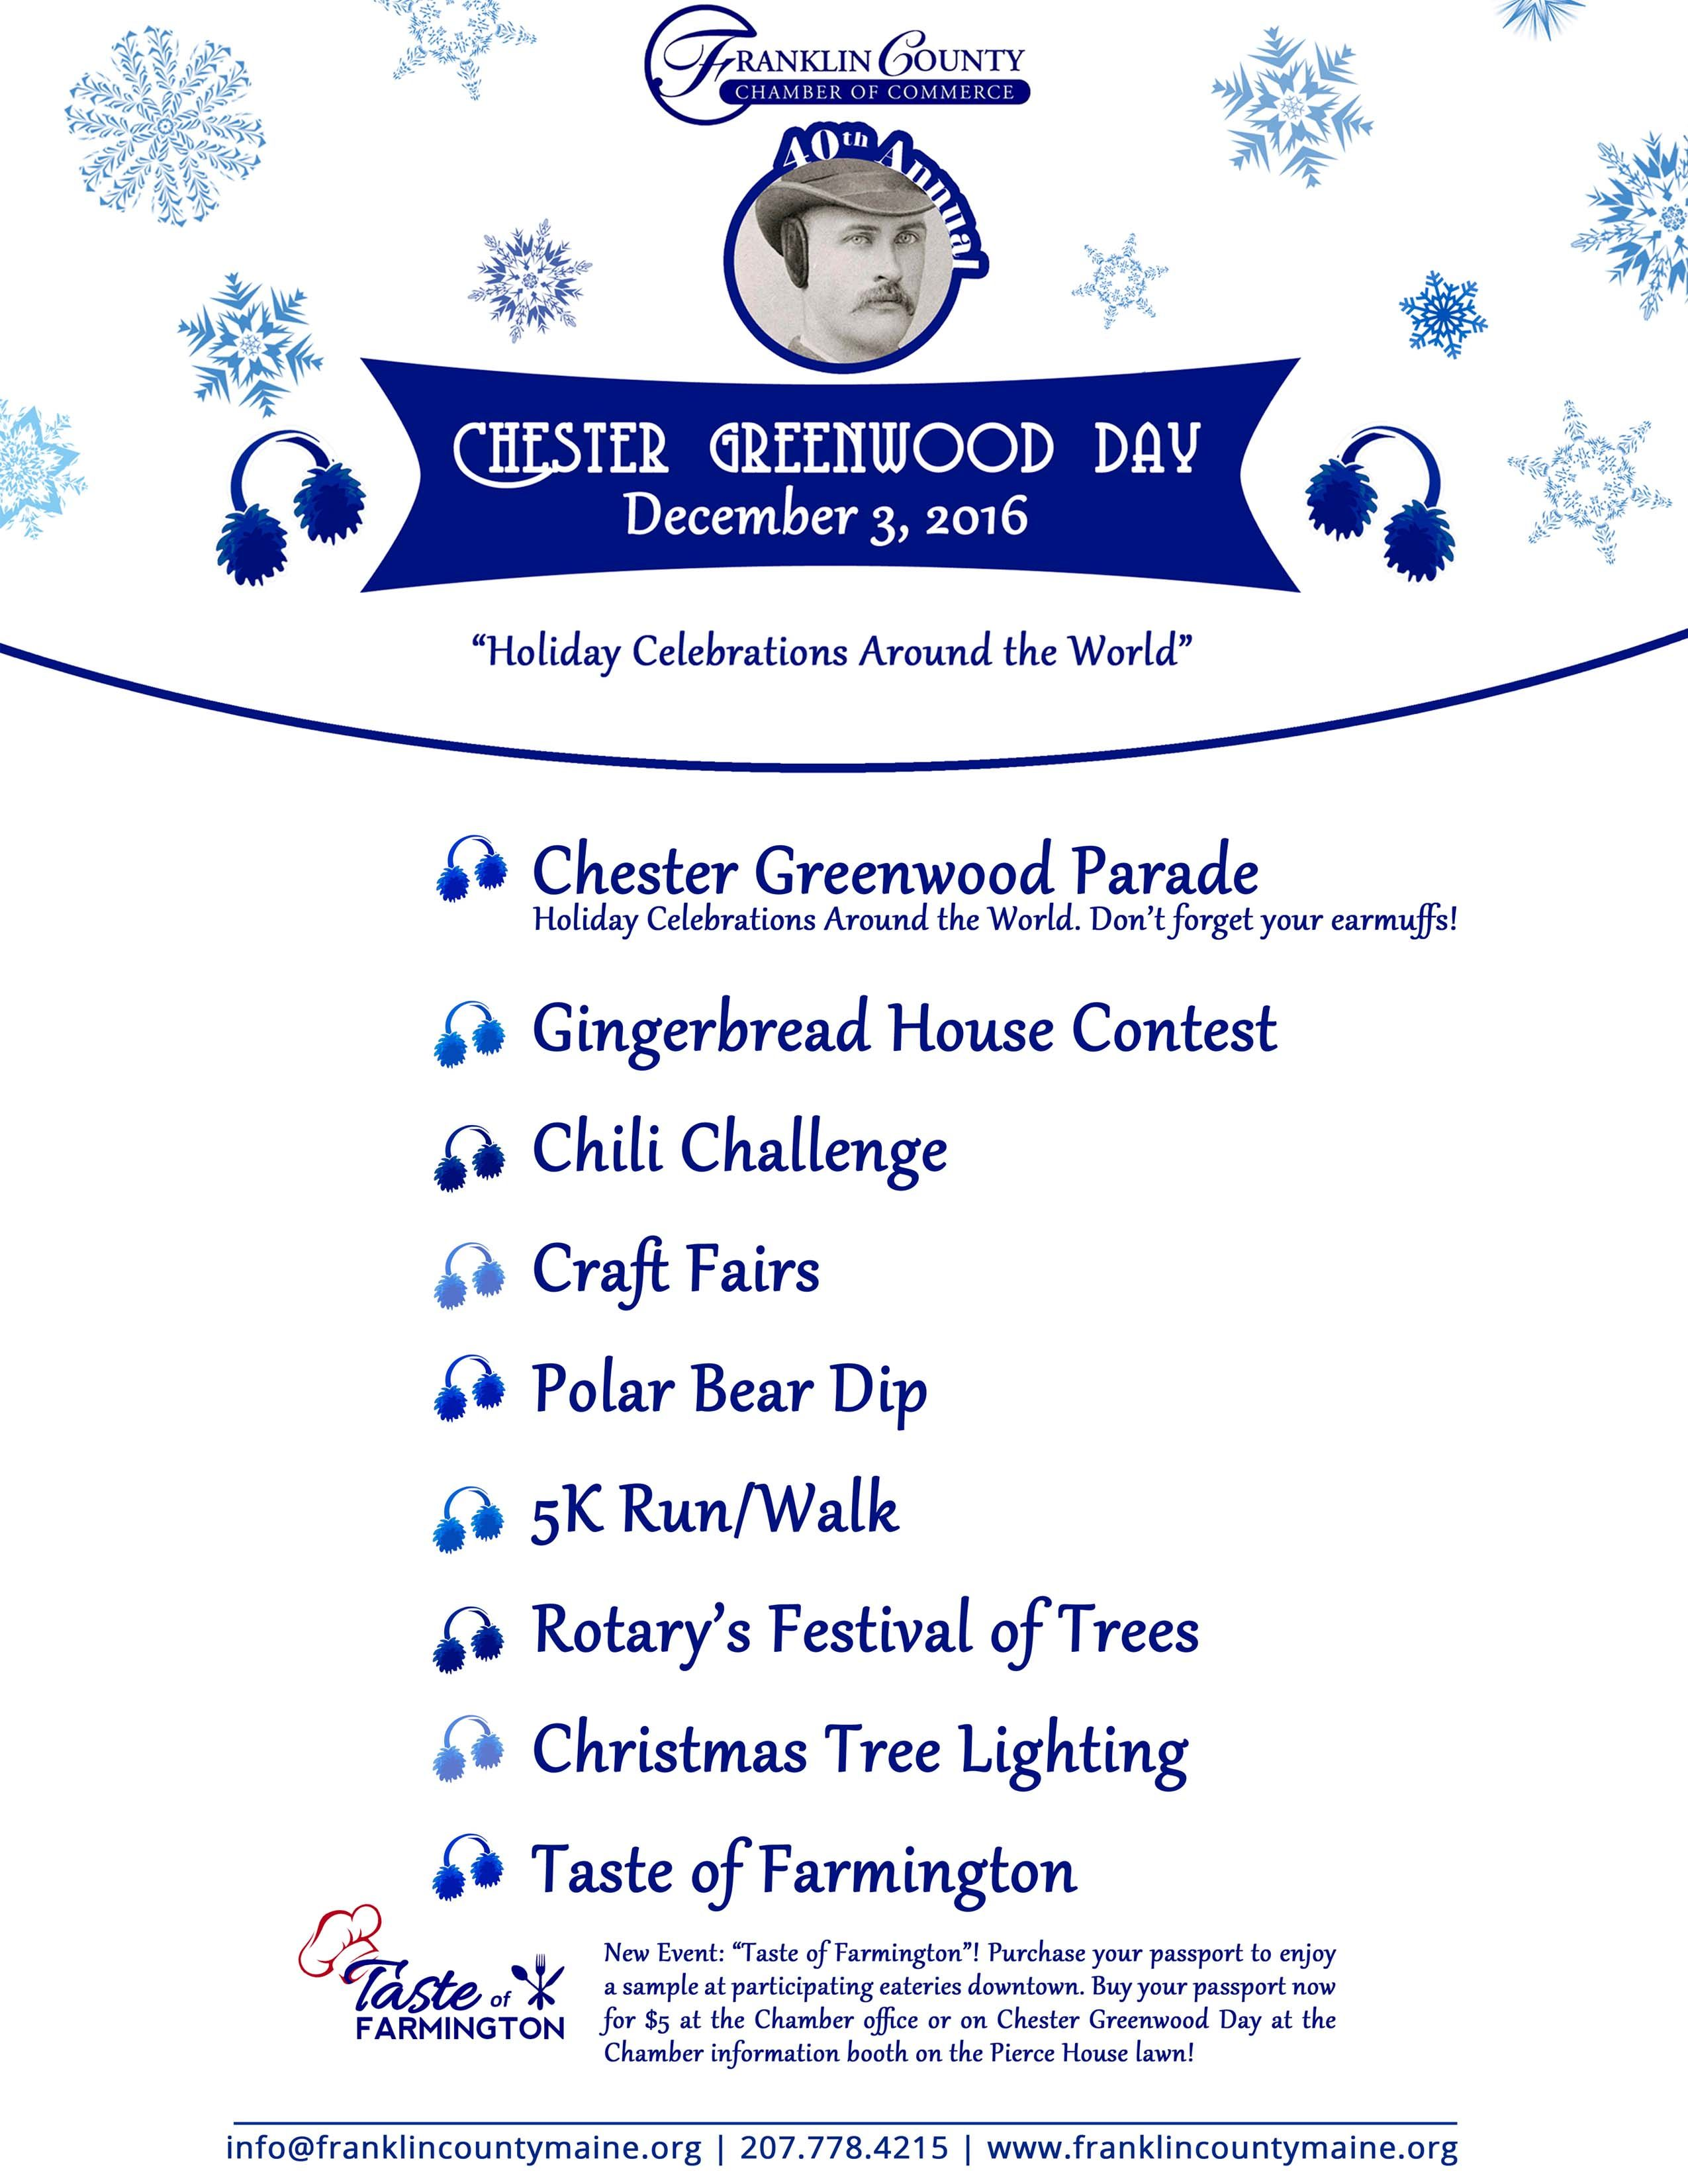 Pin by franklin county maine on Chester Greenwood Day   Holiday celebrations around the world ...